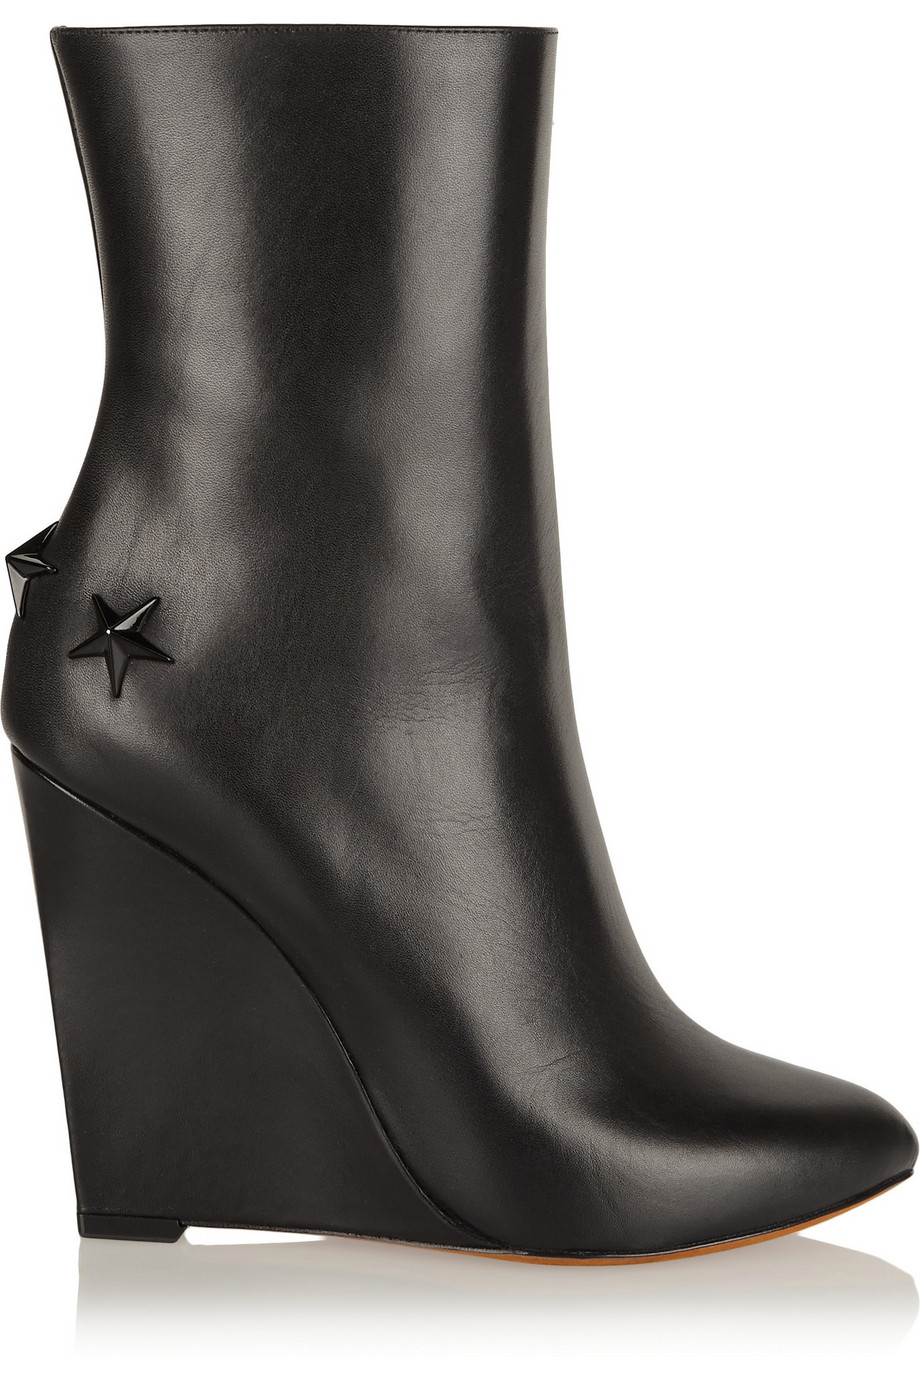 Givenchy Mina Polished-Leather Wedge Boots, Black, Women's US Size: 9.5, Size: 40